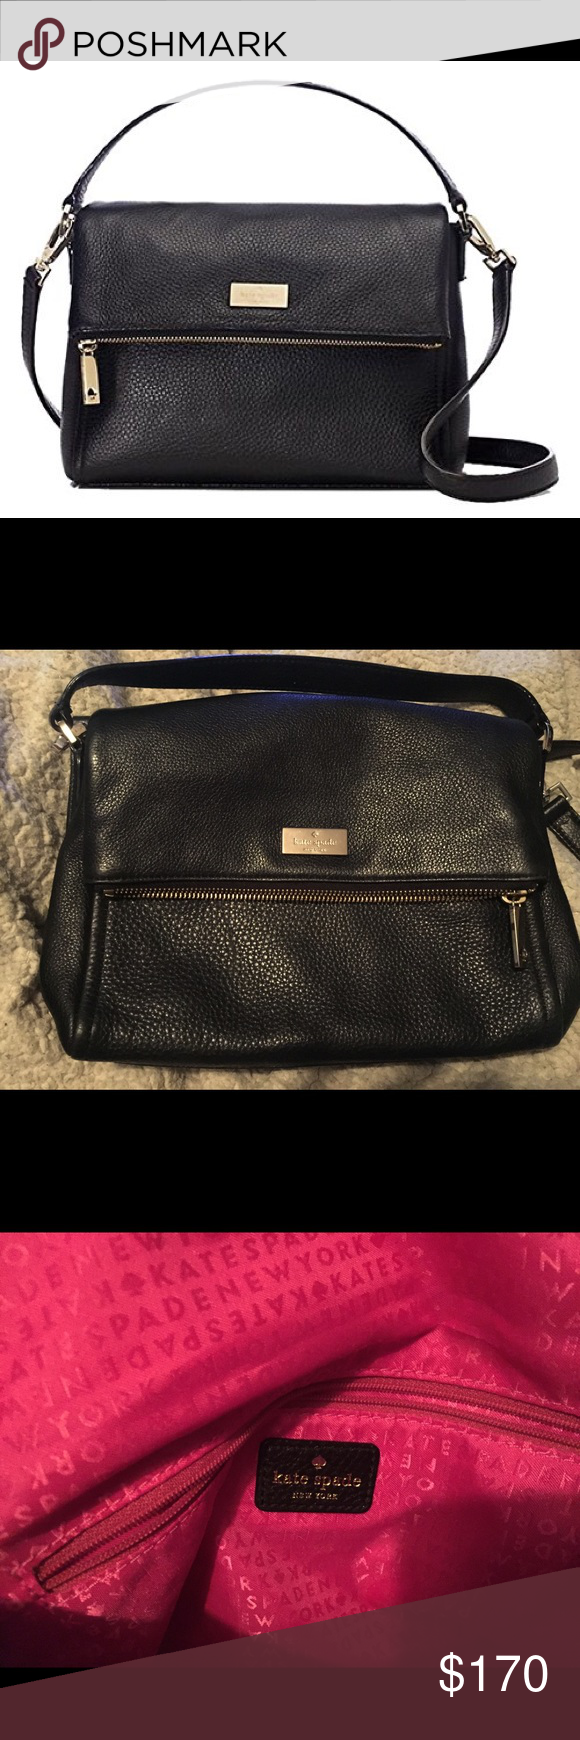 Kate Spade Highland Place Mini Maria This bag is adorable! The only thing wrong with it is a little tare on each side of the inside pockets (there is a picture included of this). The pockets are still functional. I haven't used the bag much at all and am in the process of moving and cleaning out my closet! This bag was originally $228! Feel free to make a reasonable offer :) kate spade Bags Crossbody Bags